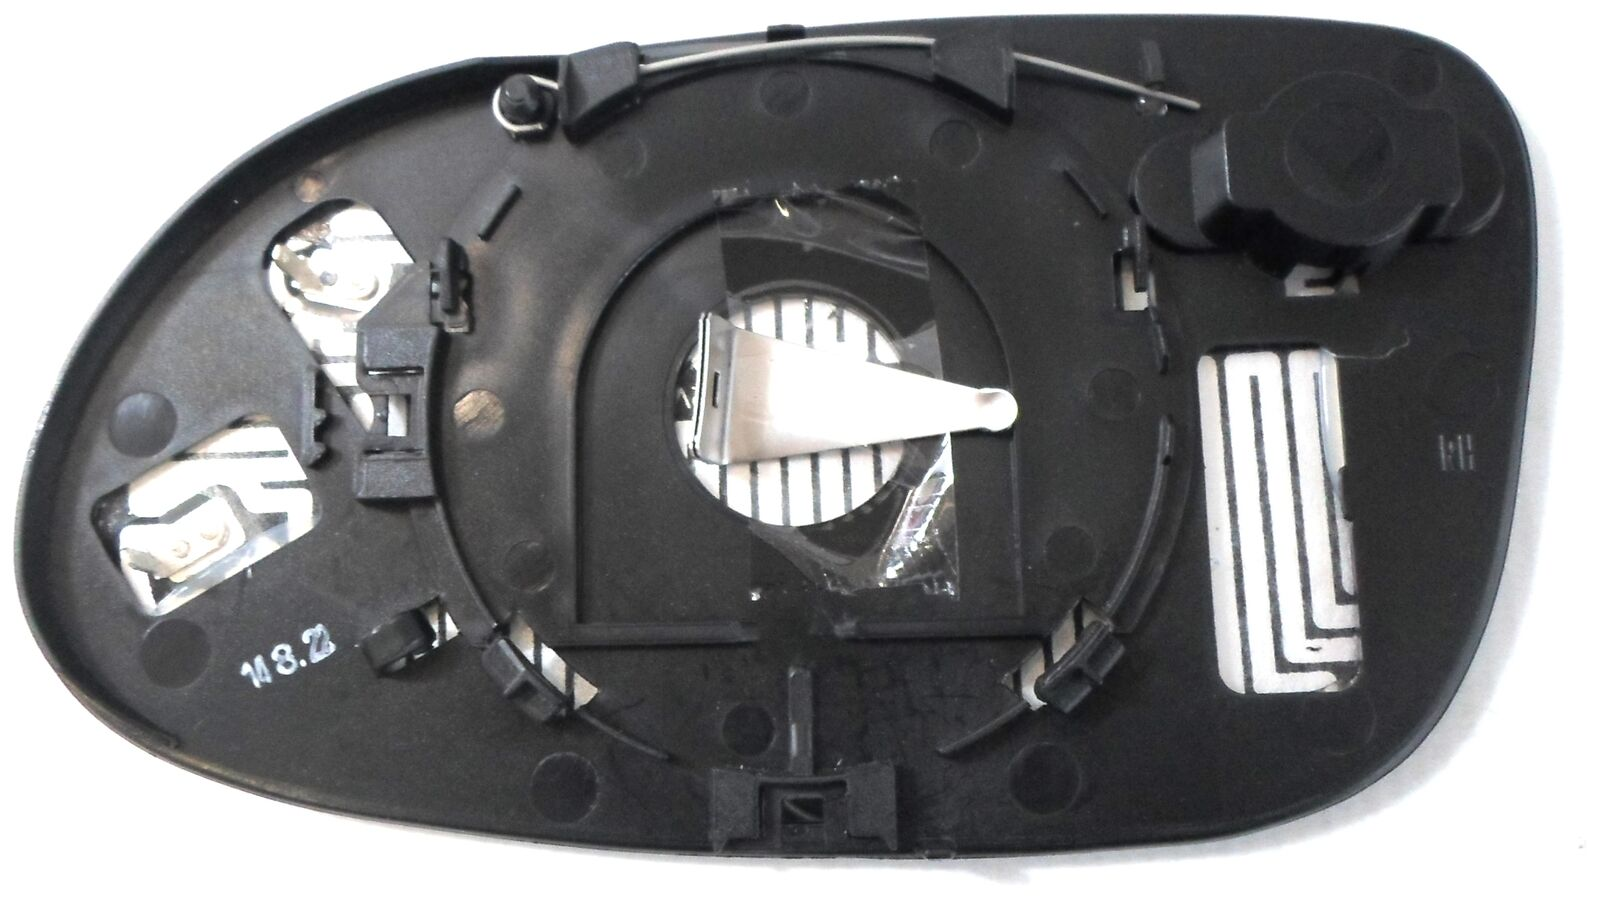 Trupart MG830 Right Mirror Glass Heated Fits Mercedes A Class A190 04.01-04.04